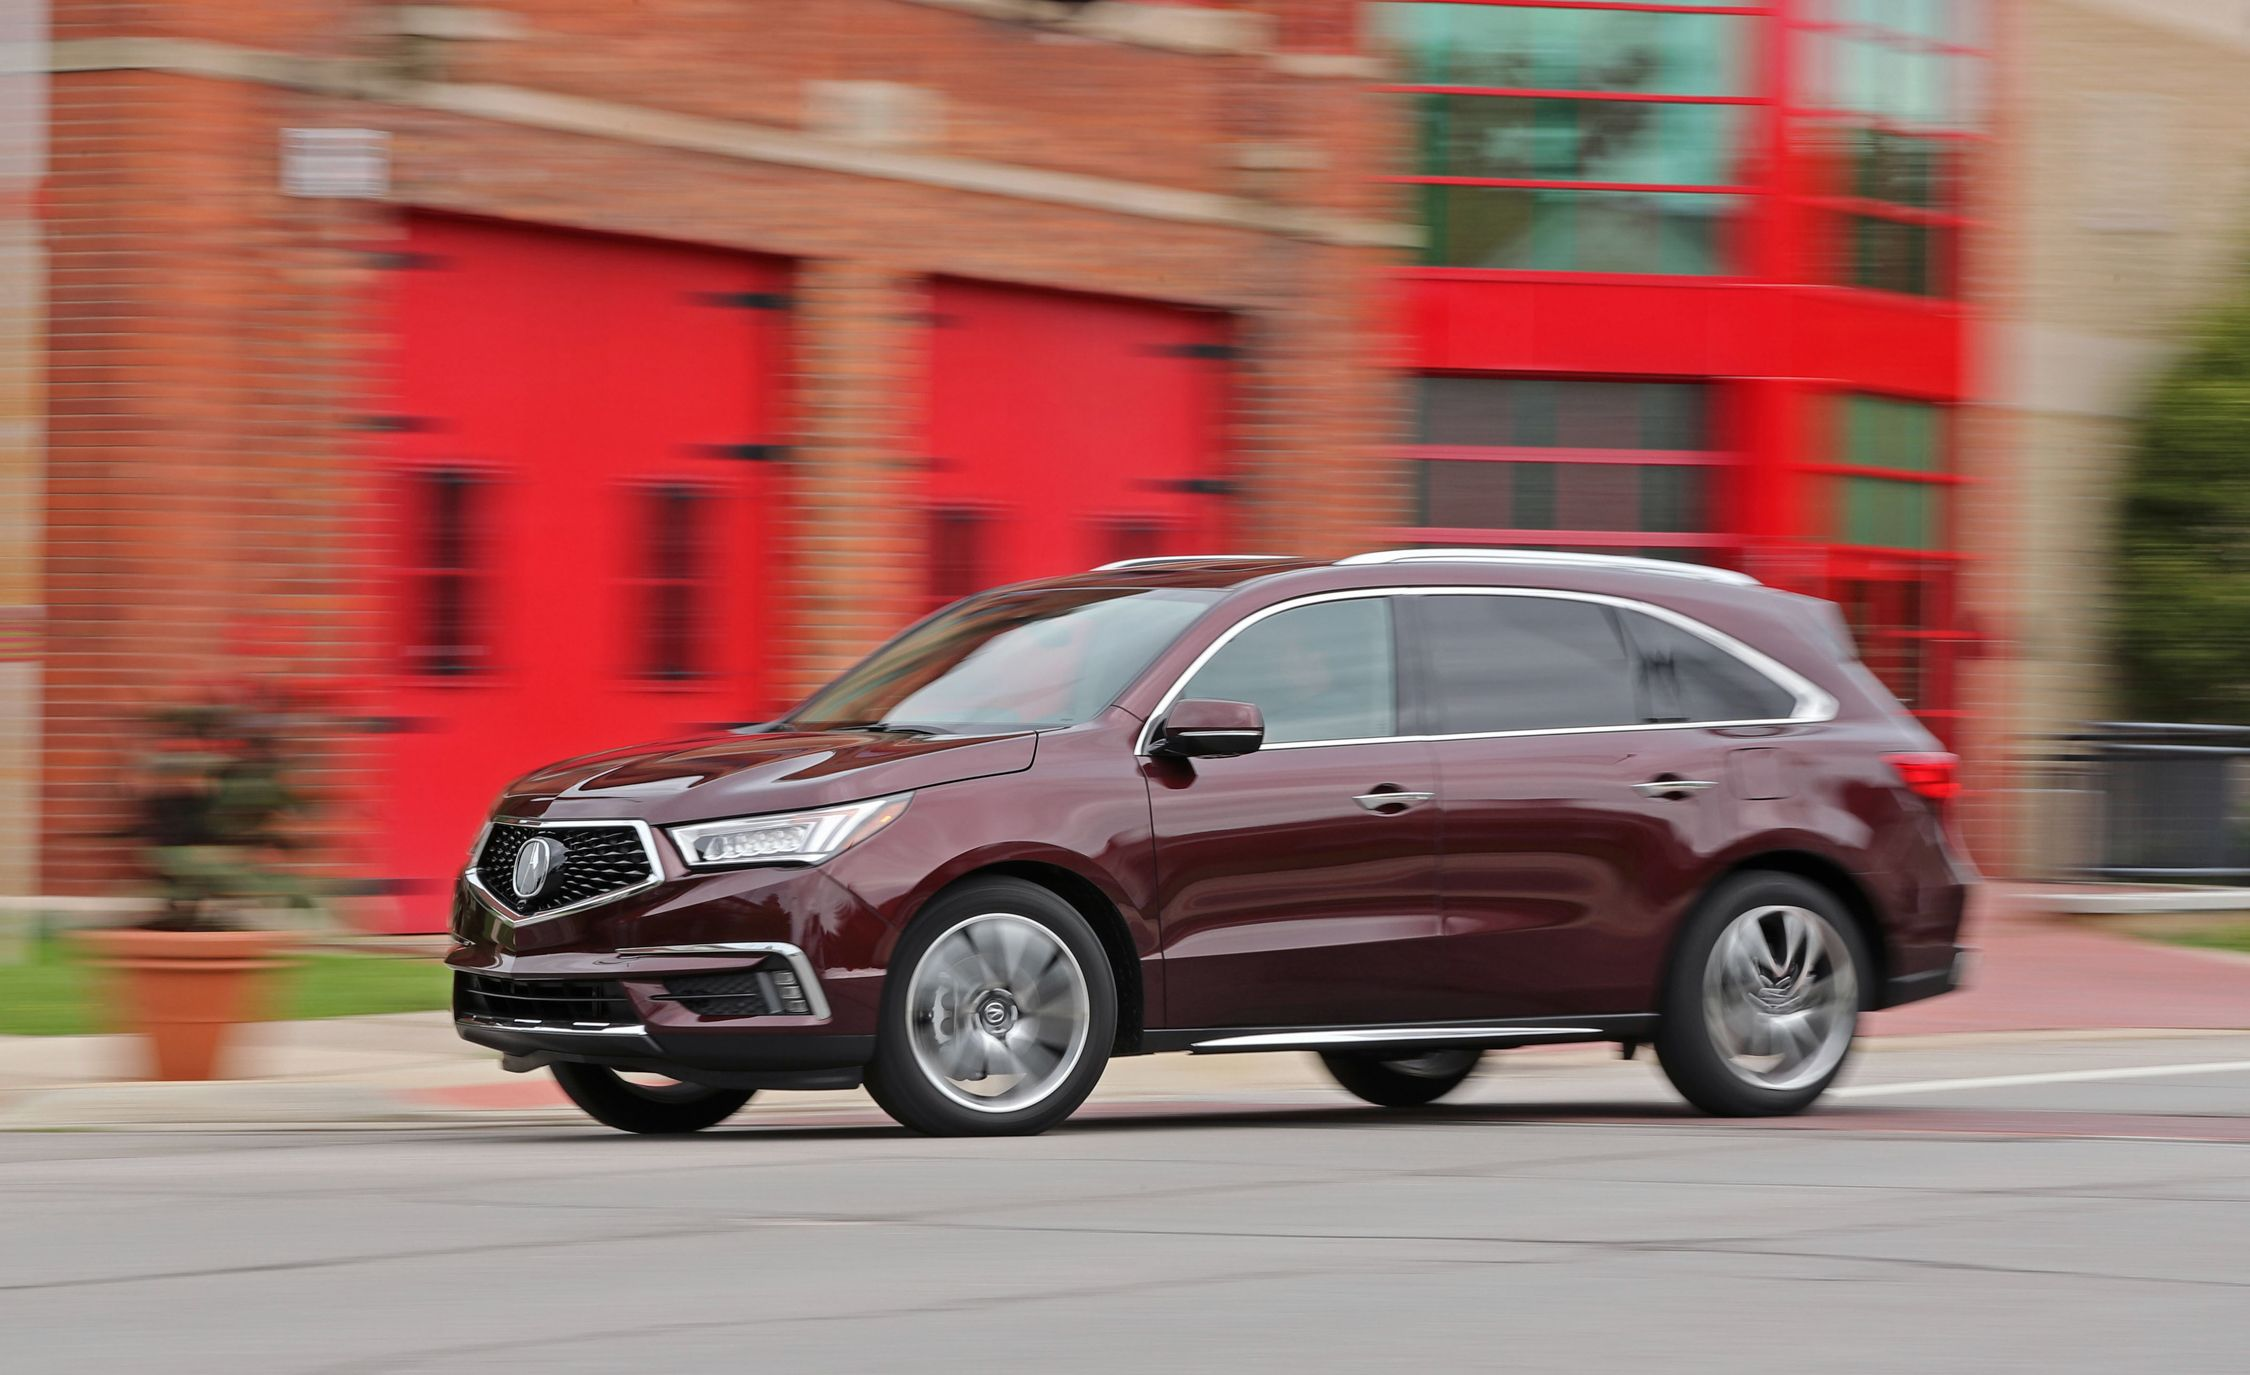 2018 Acura Mdx Warranty And Maintenance Coverage Review Car And